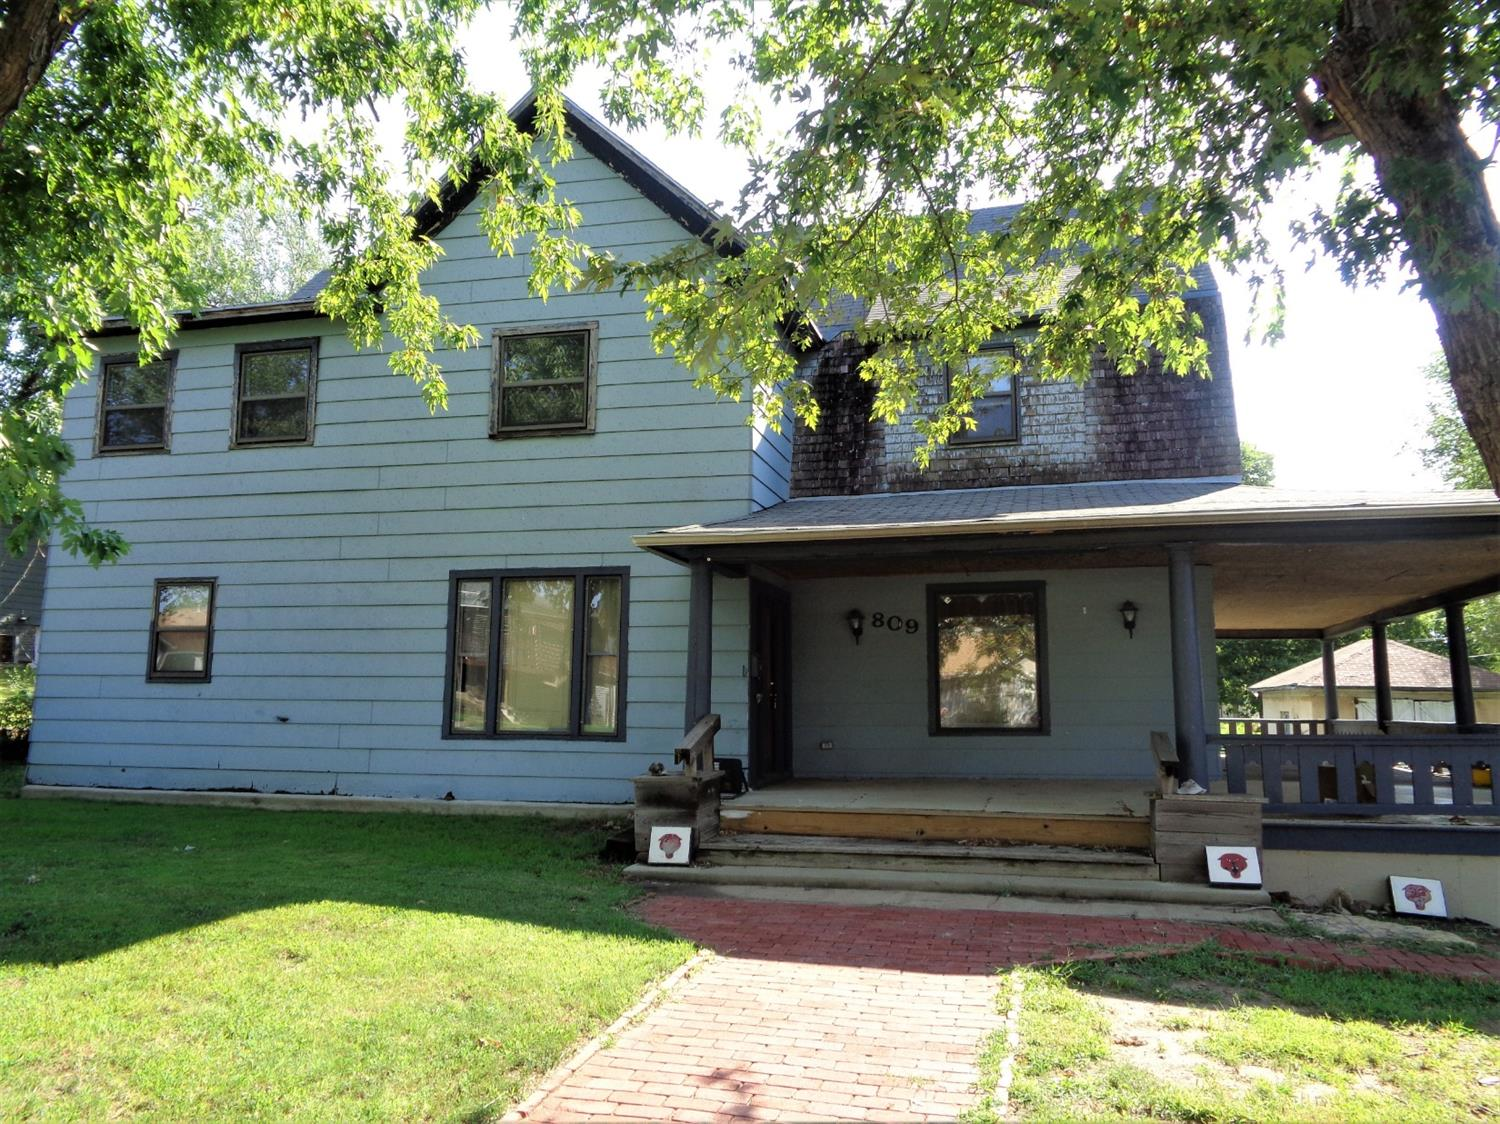 Got space? This home features 5 bedrooms, 3 baths, a great wrap around porch. With some TLC this home will shine! The AC on the south side of the house was replaced in 2011, The motor was replaced in the other unit in 2012.